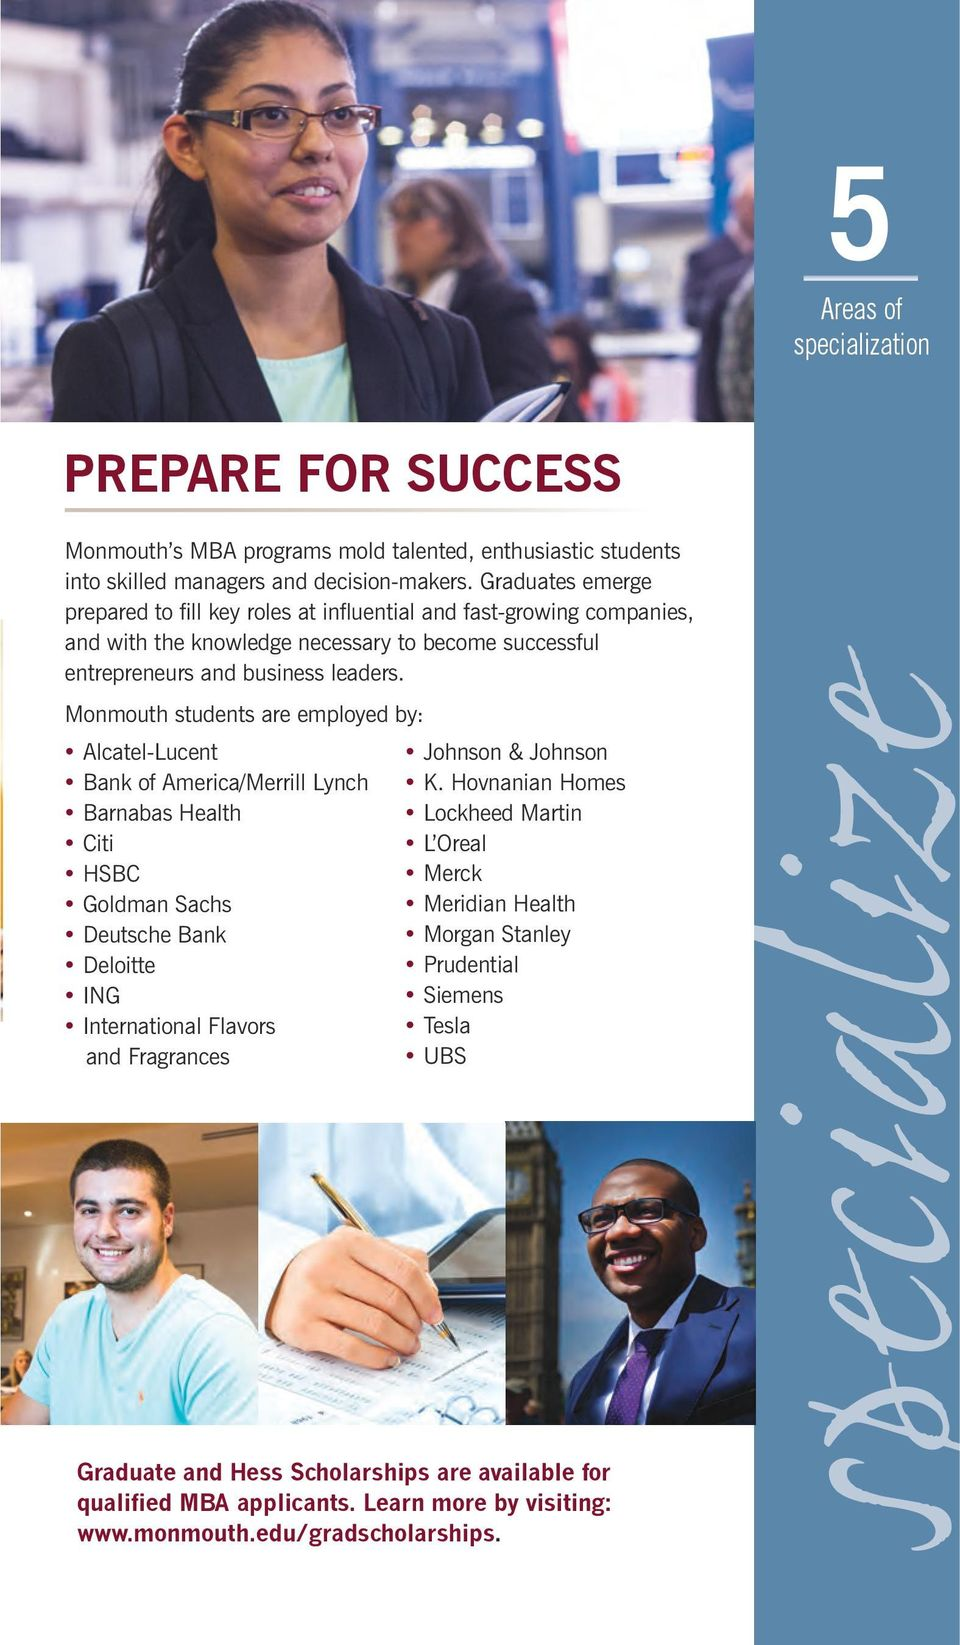 Monmouth students are employed by: Alcatel-Lucent Bank of America/Merrill Lynch Barnabas Health Citi HSBC Goldman Sachs Deutsche Bank Deloitte ING International Flavors and Fragrances Johnson &